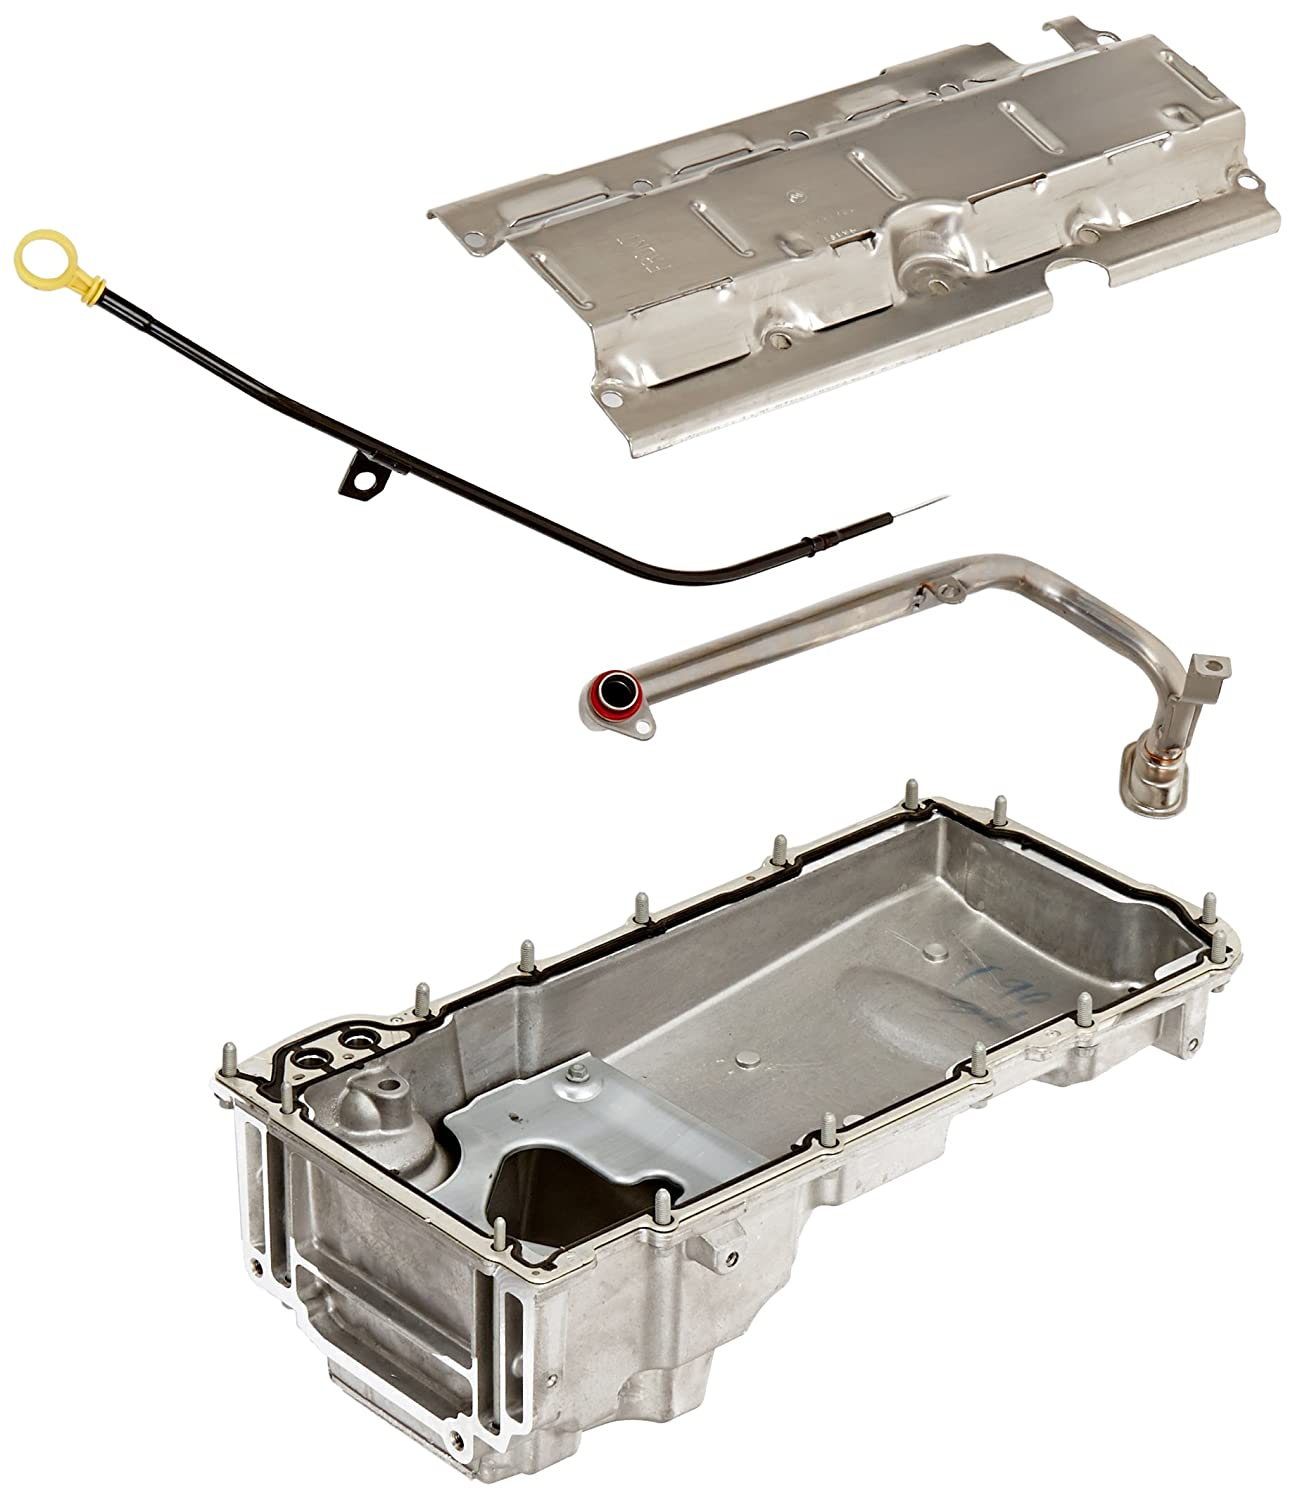 GM Performance Parts 19212593 Oil Pan